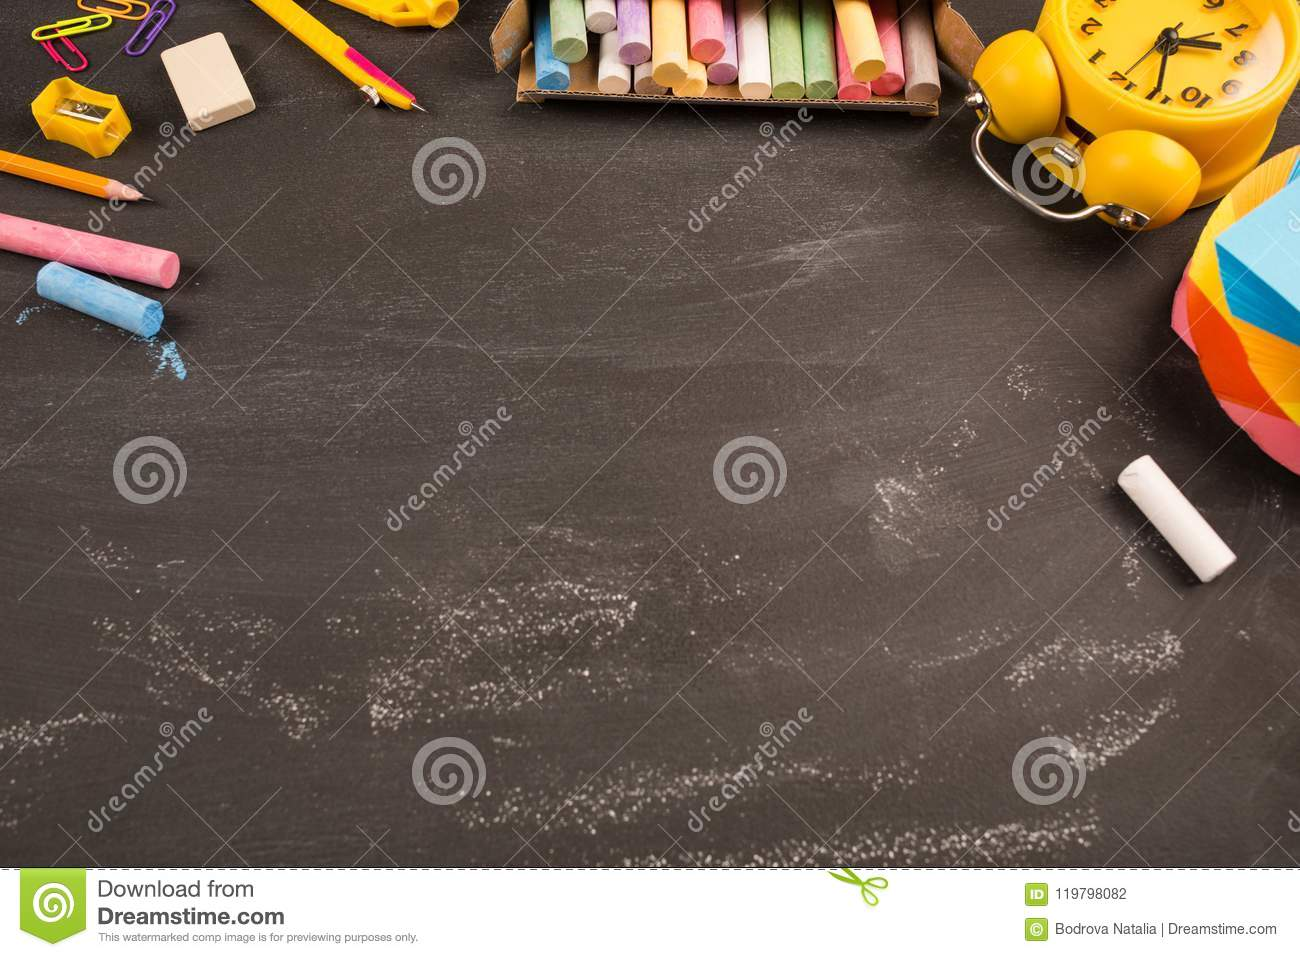 Bright office supplies, yellow alarm clock on black chalkboard top view, copy space. concept: back to school